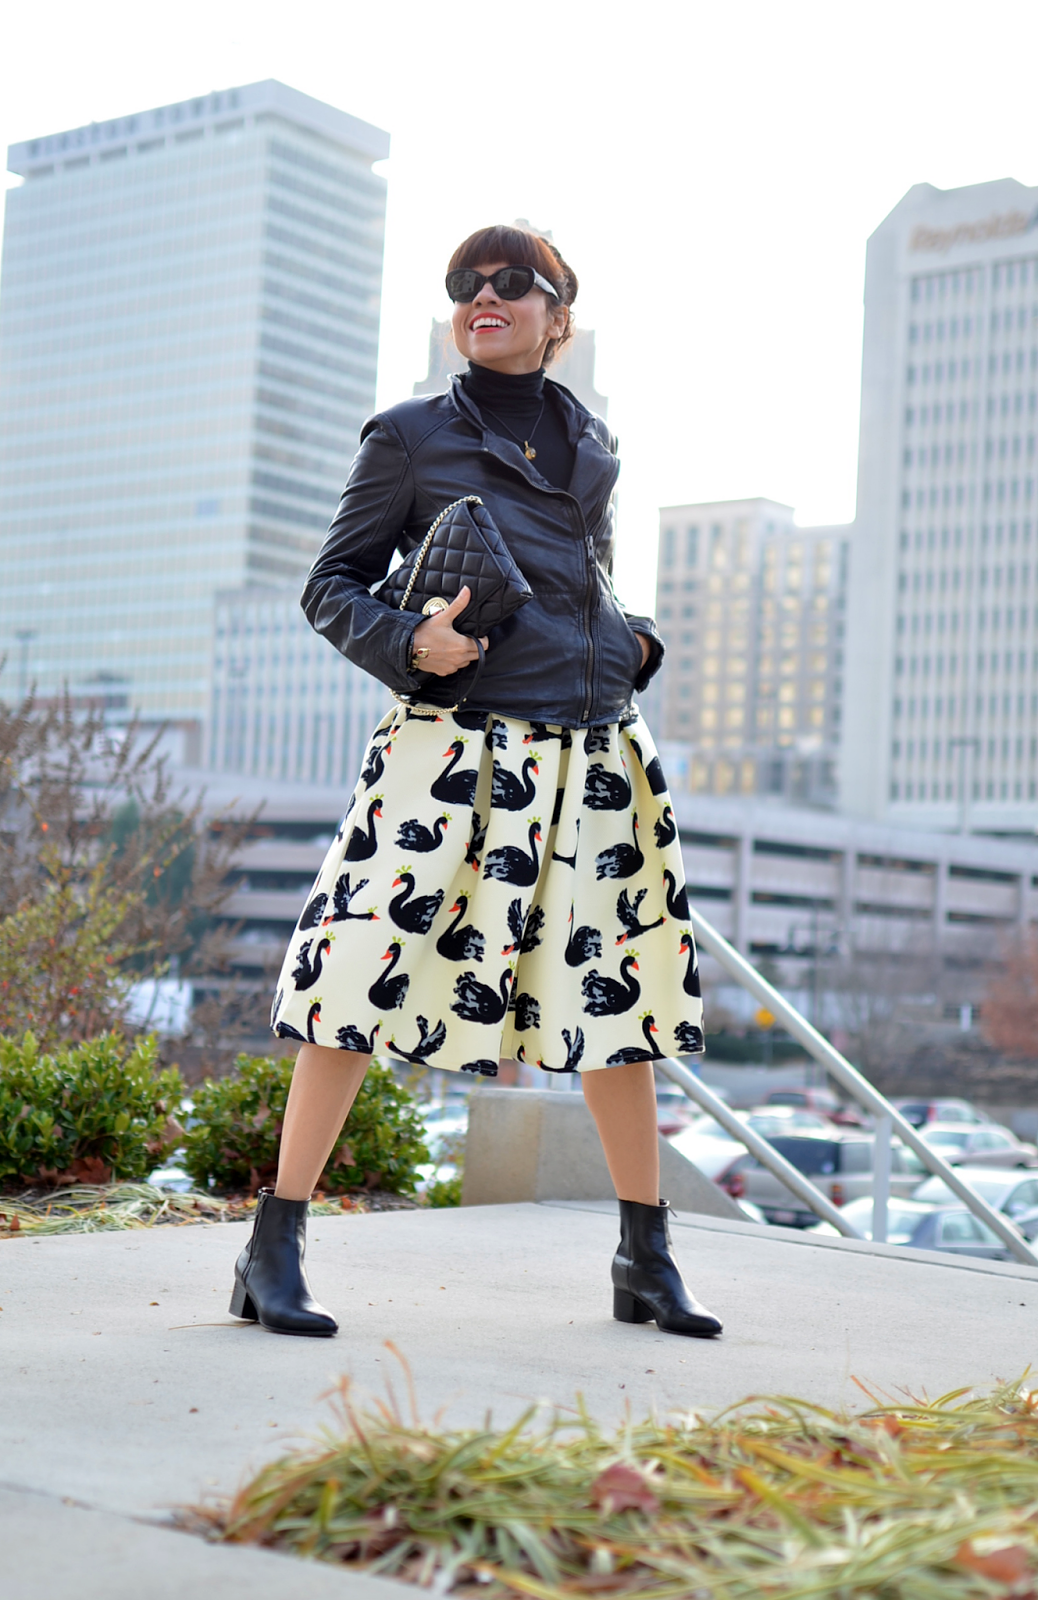 Biker jacket with full skirt